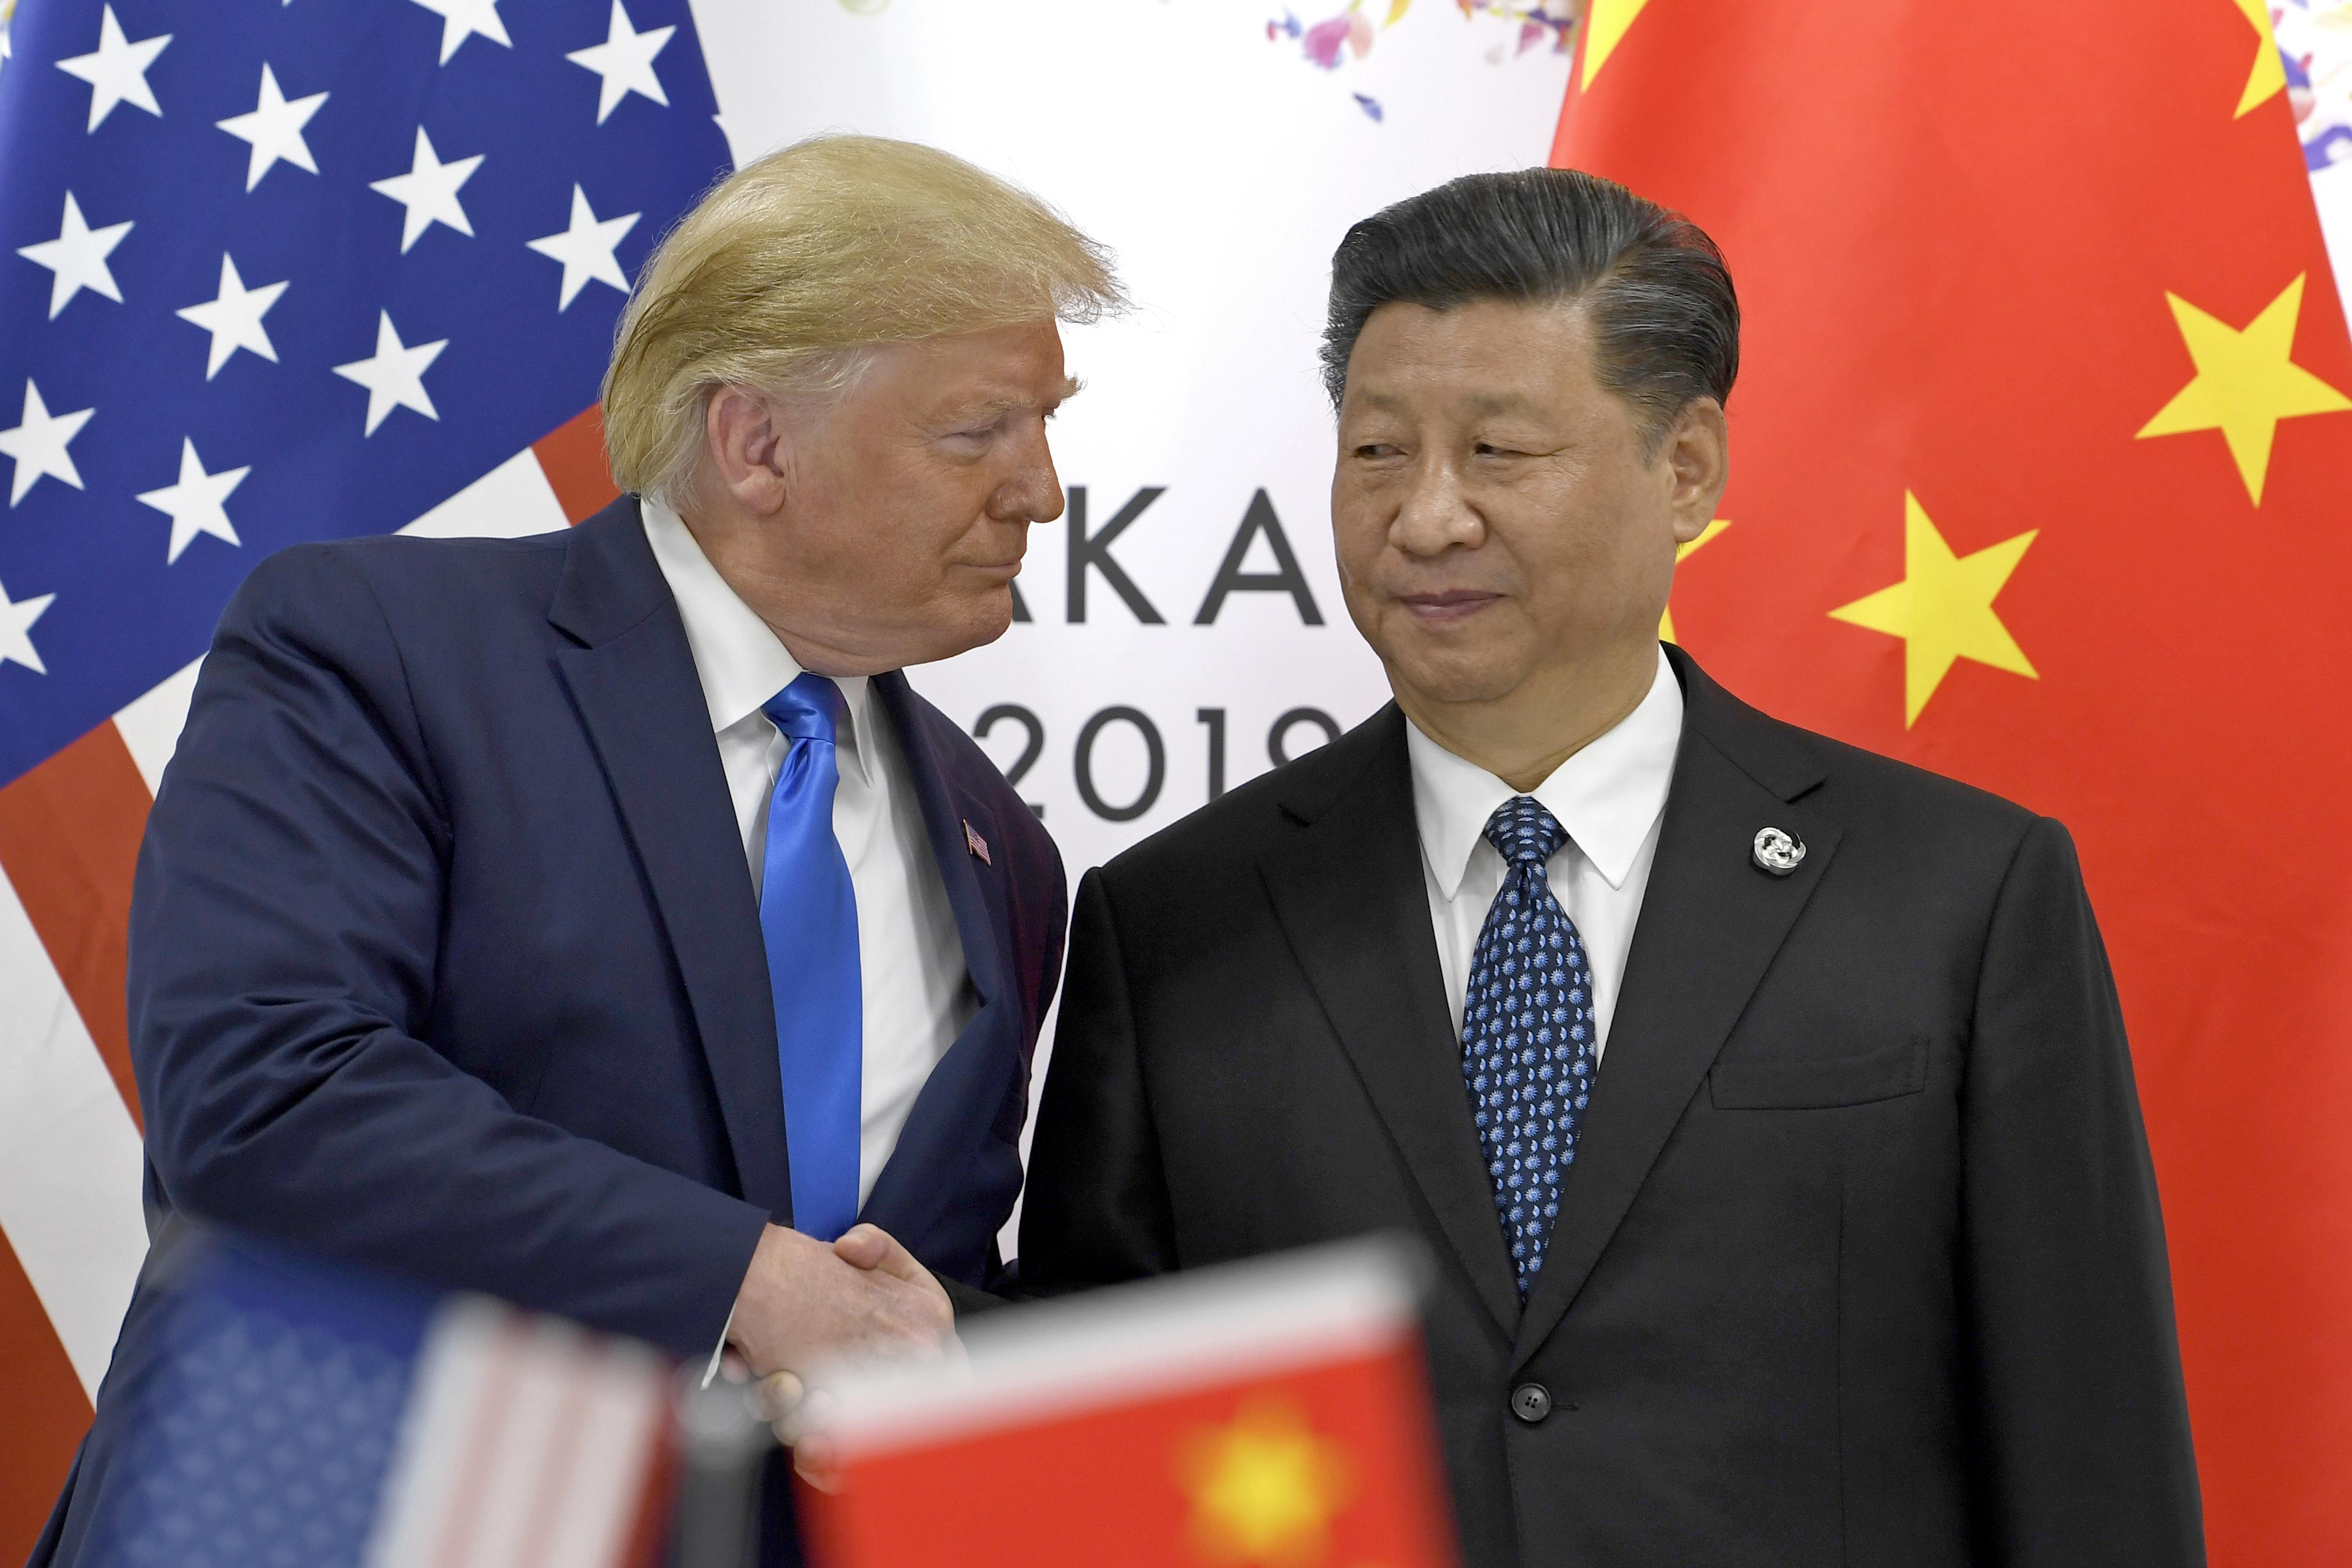 Trump says China likely stalling on trade, pending election